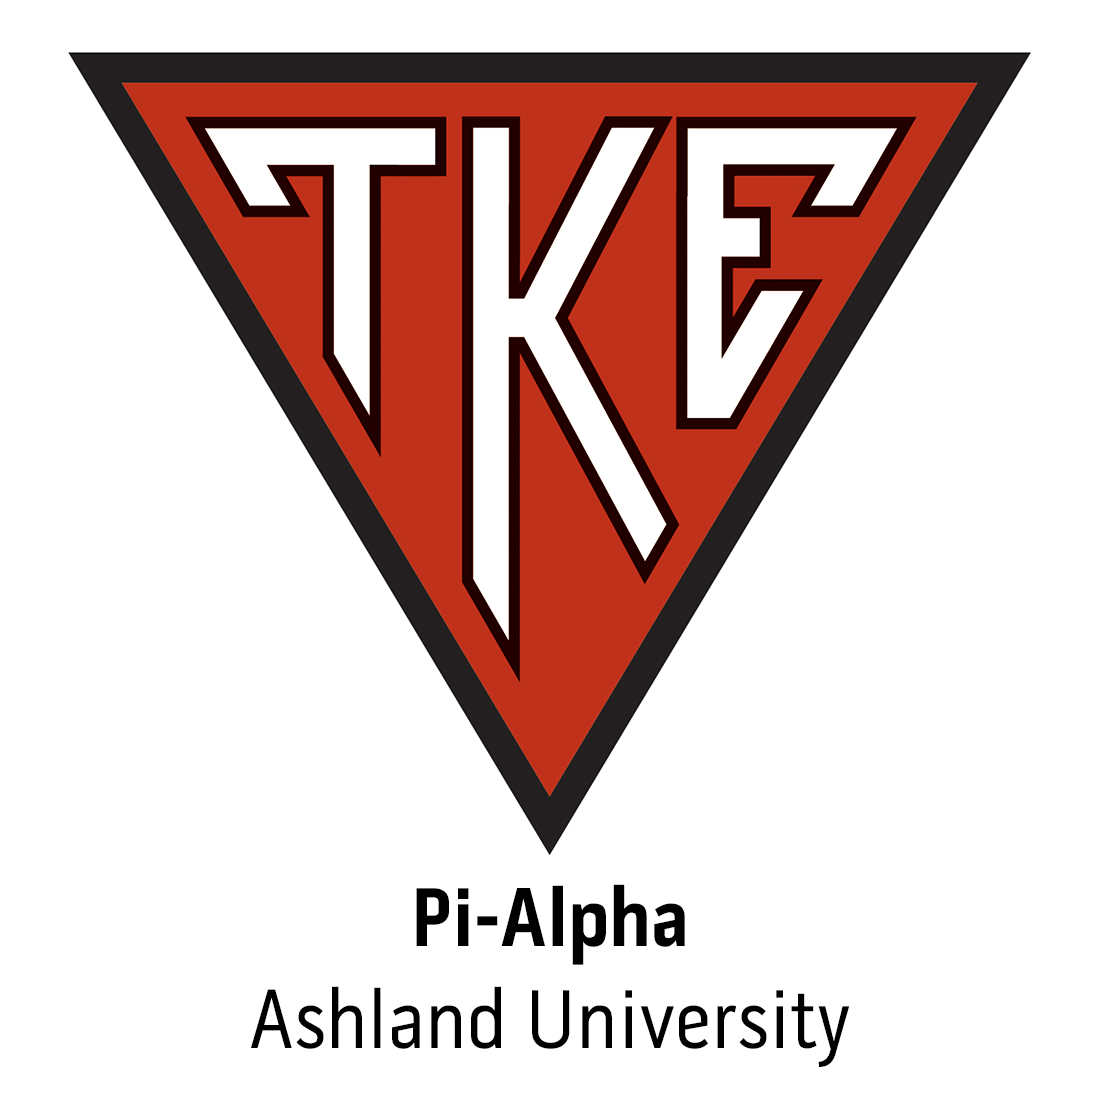 Pi-Alpha Chapter at Ashland University